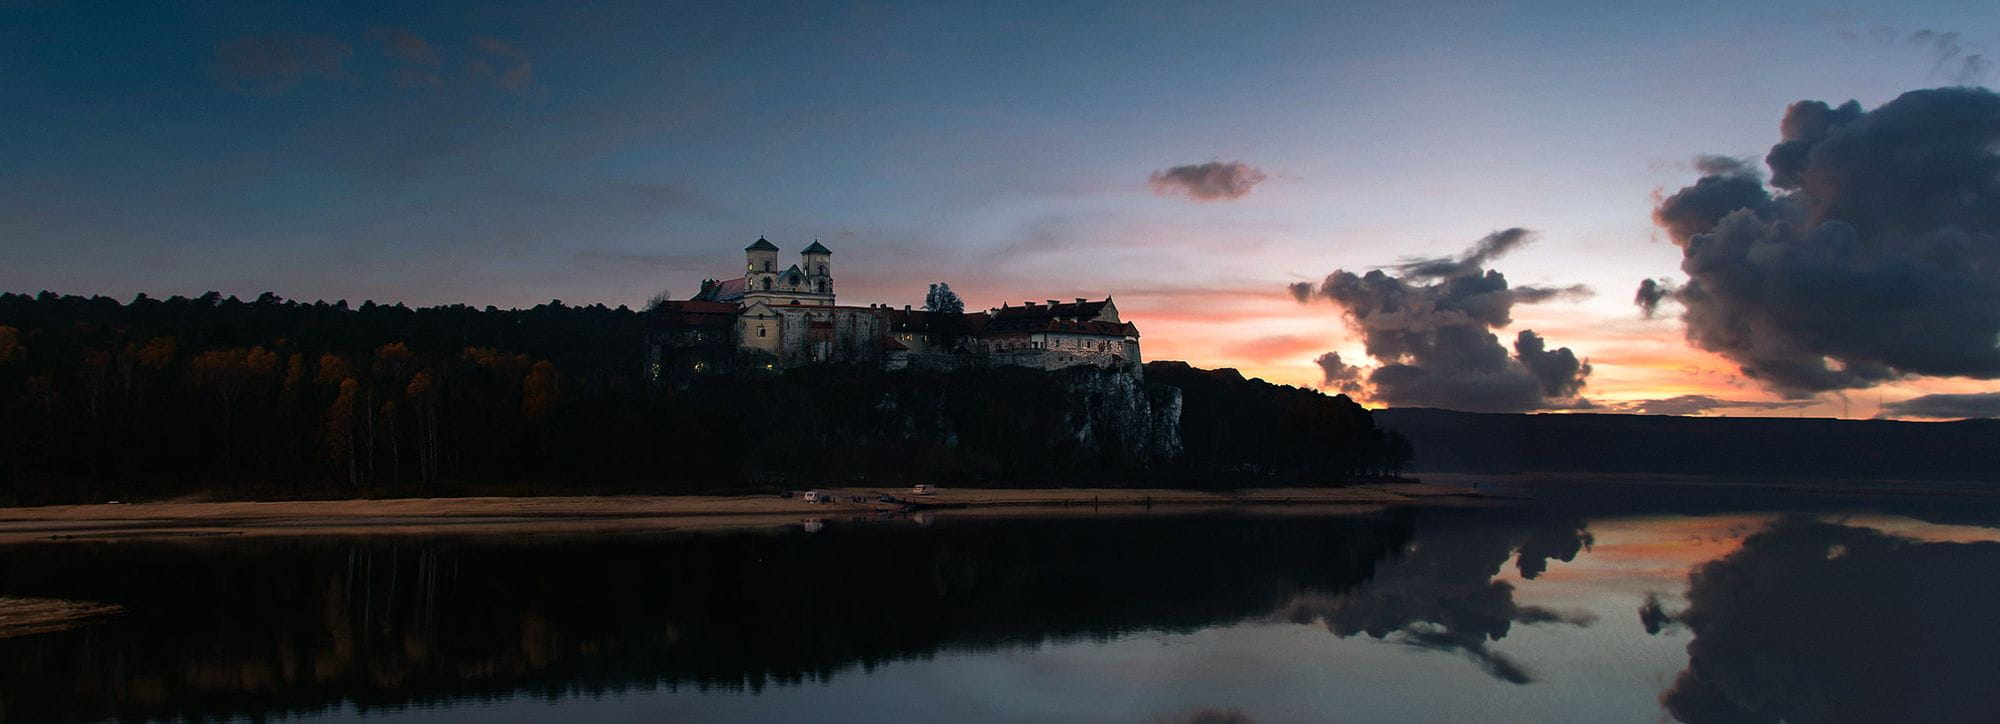 The Basics of Matte Painting